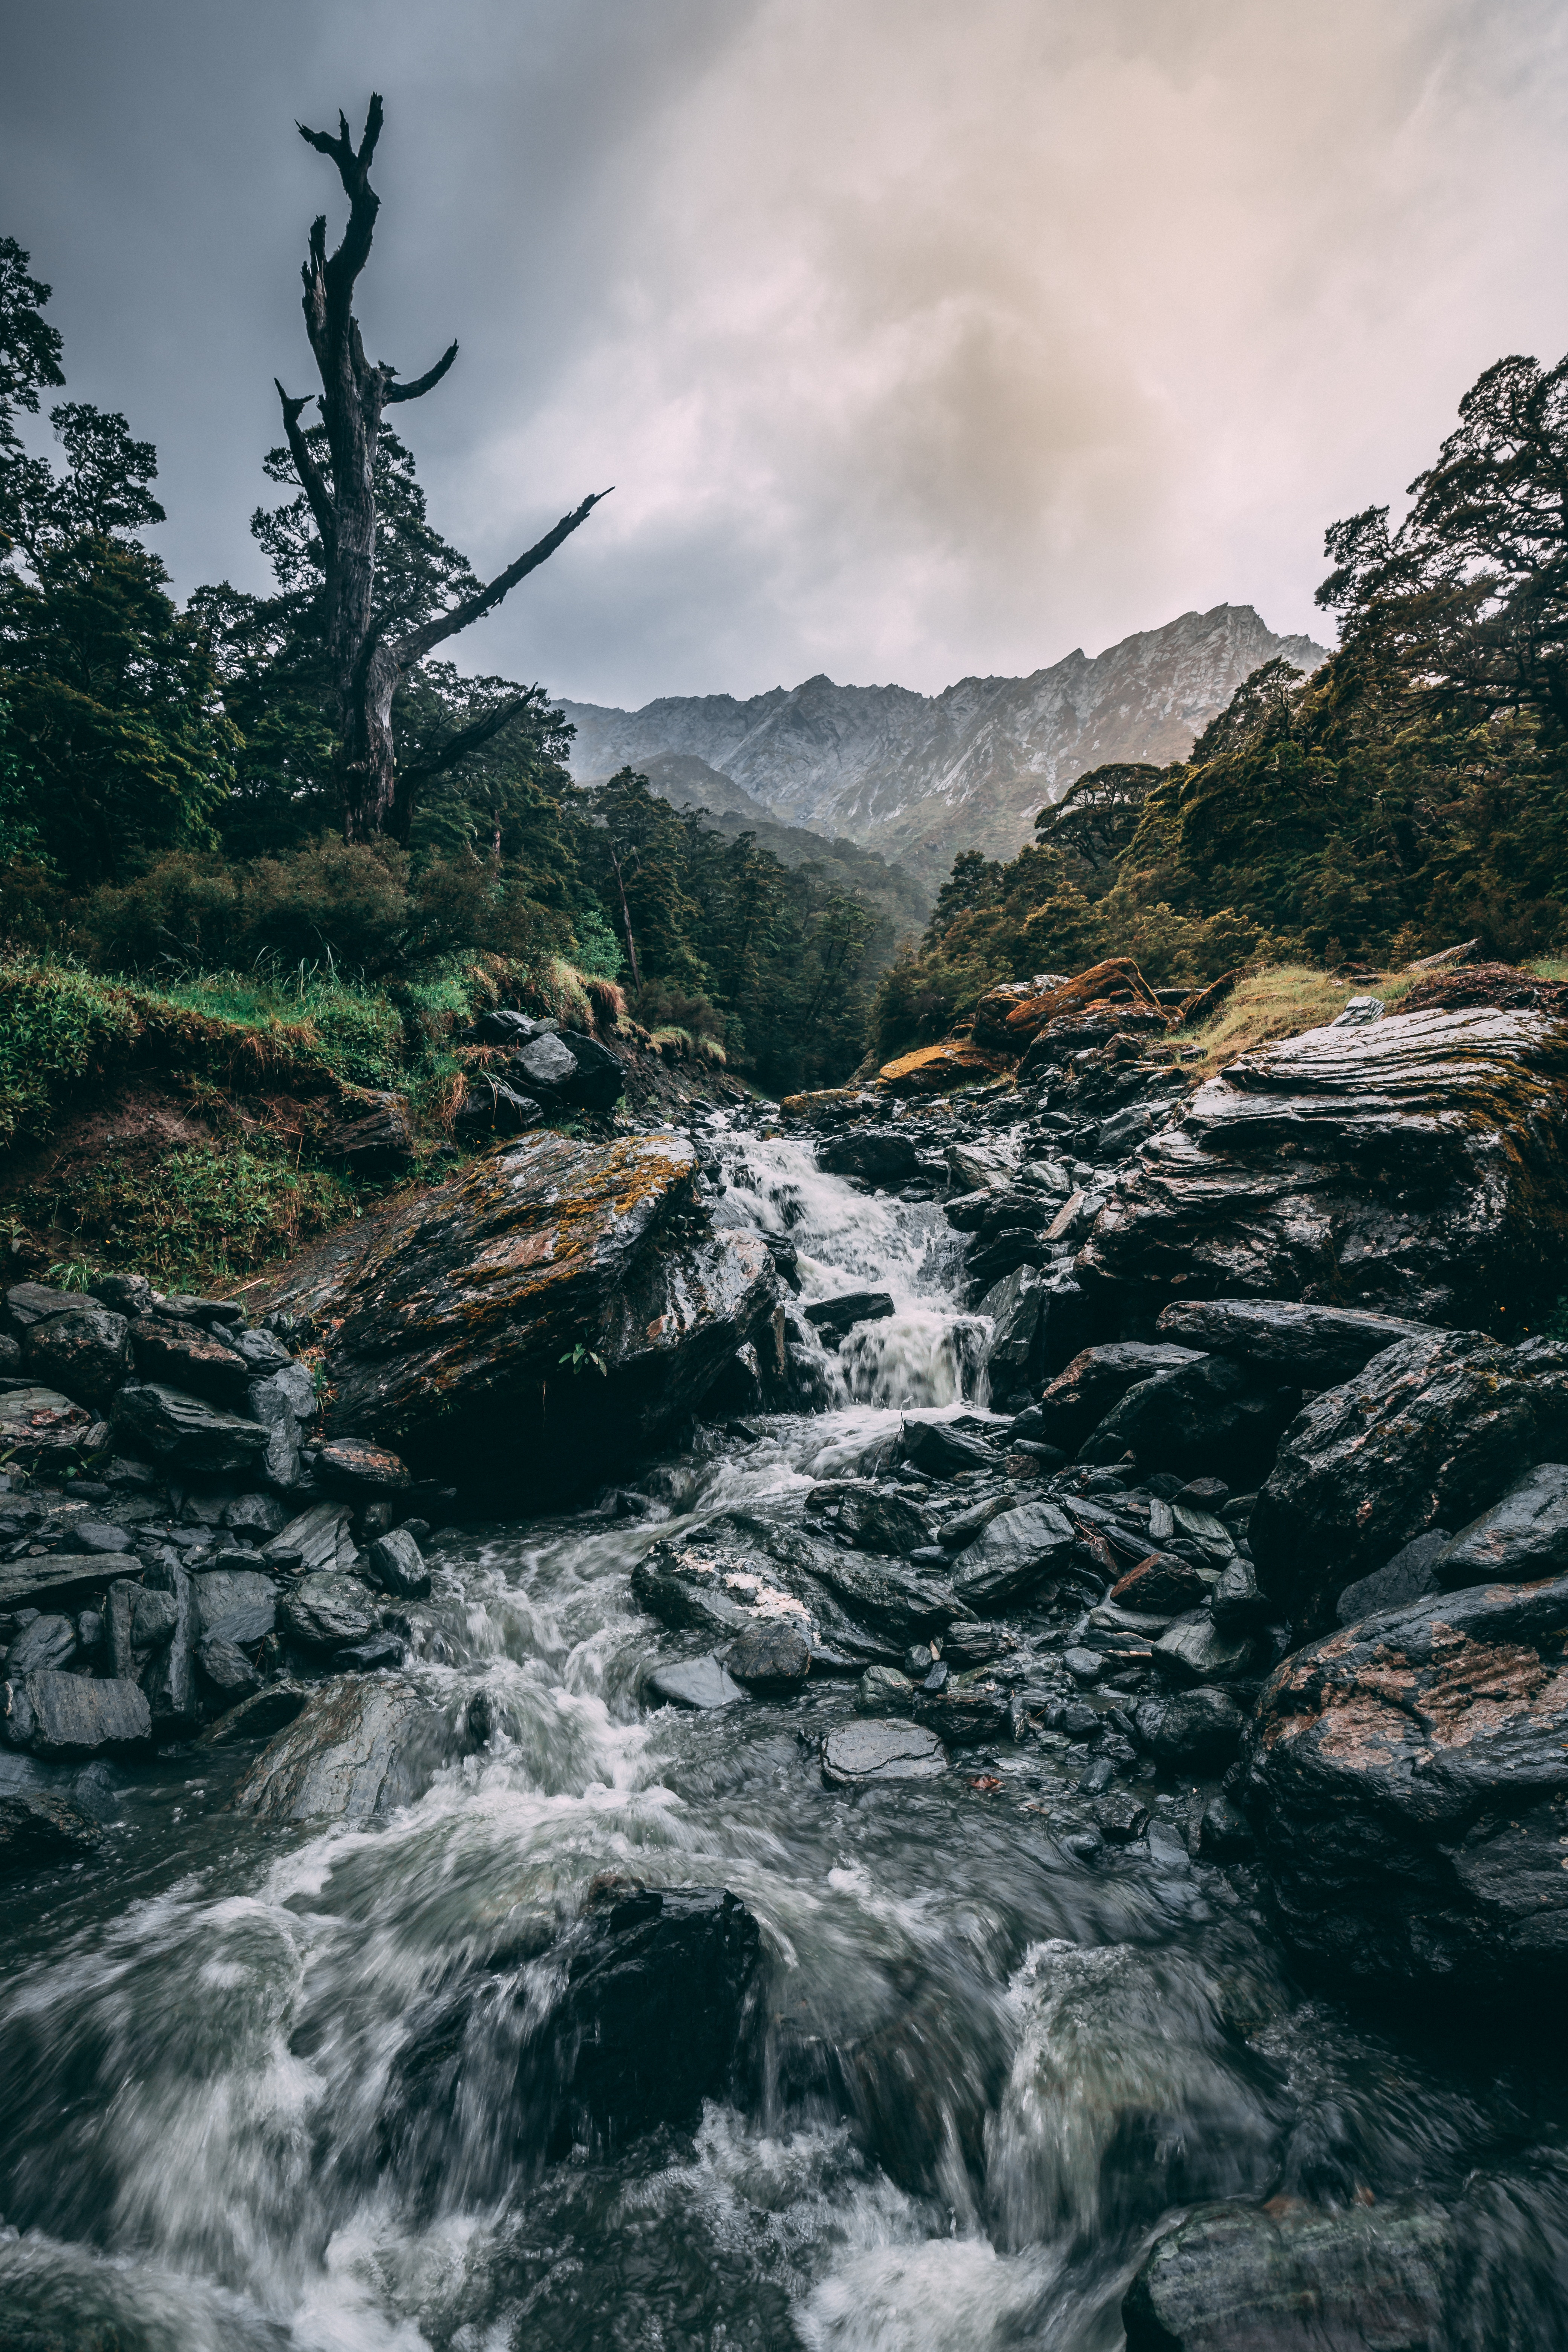 74519 download wallpaper Nature, Grass, Stones, Mountains, Waterfall, Flow screensavers and pictures for free